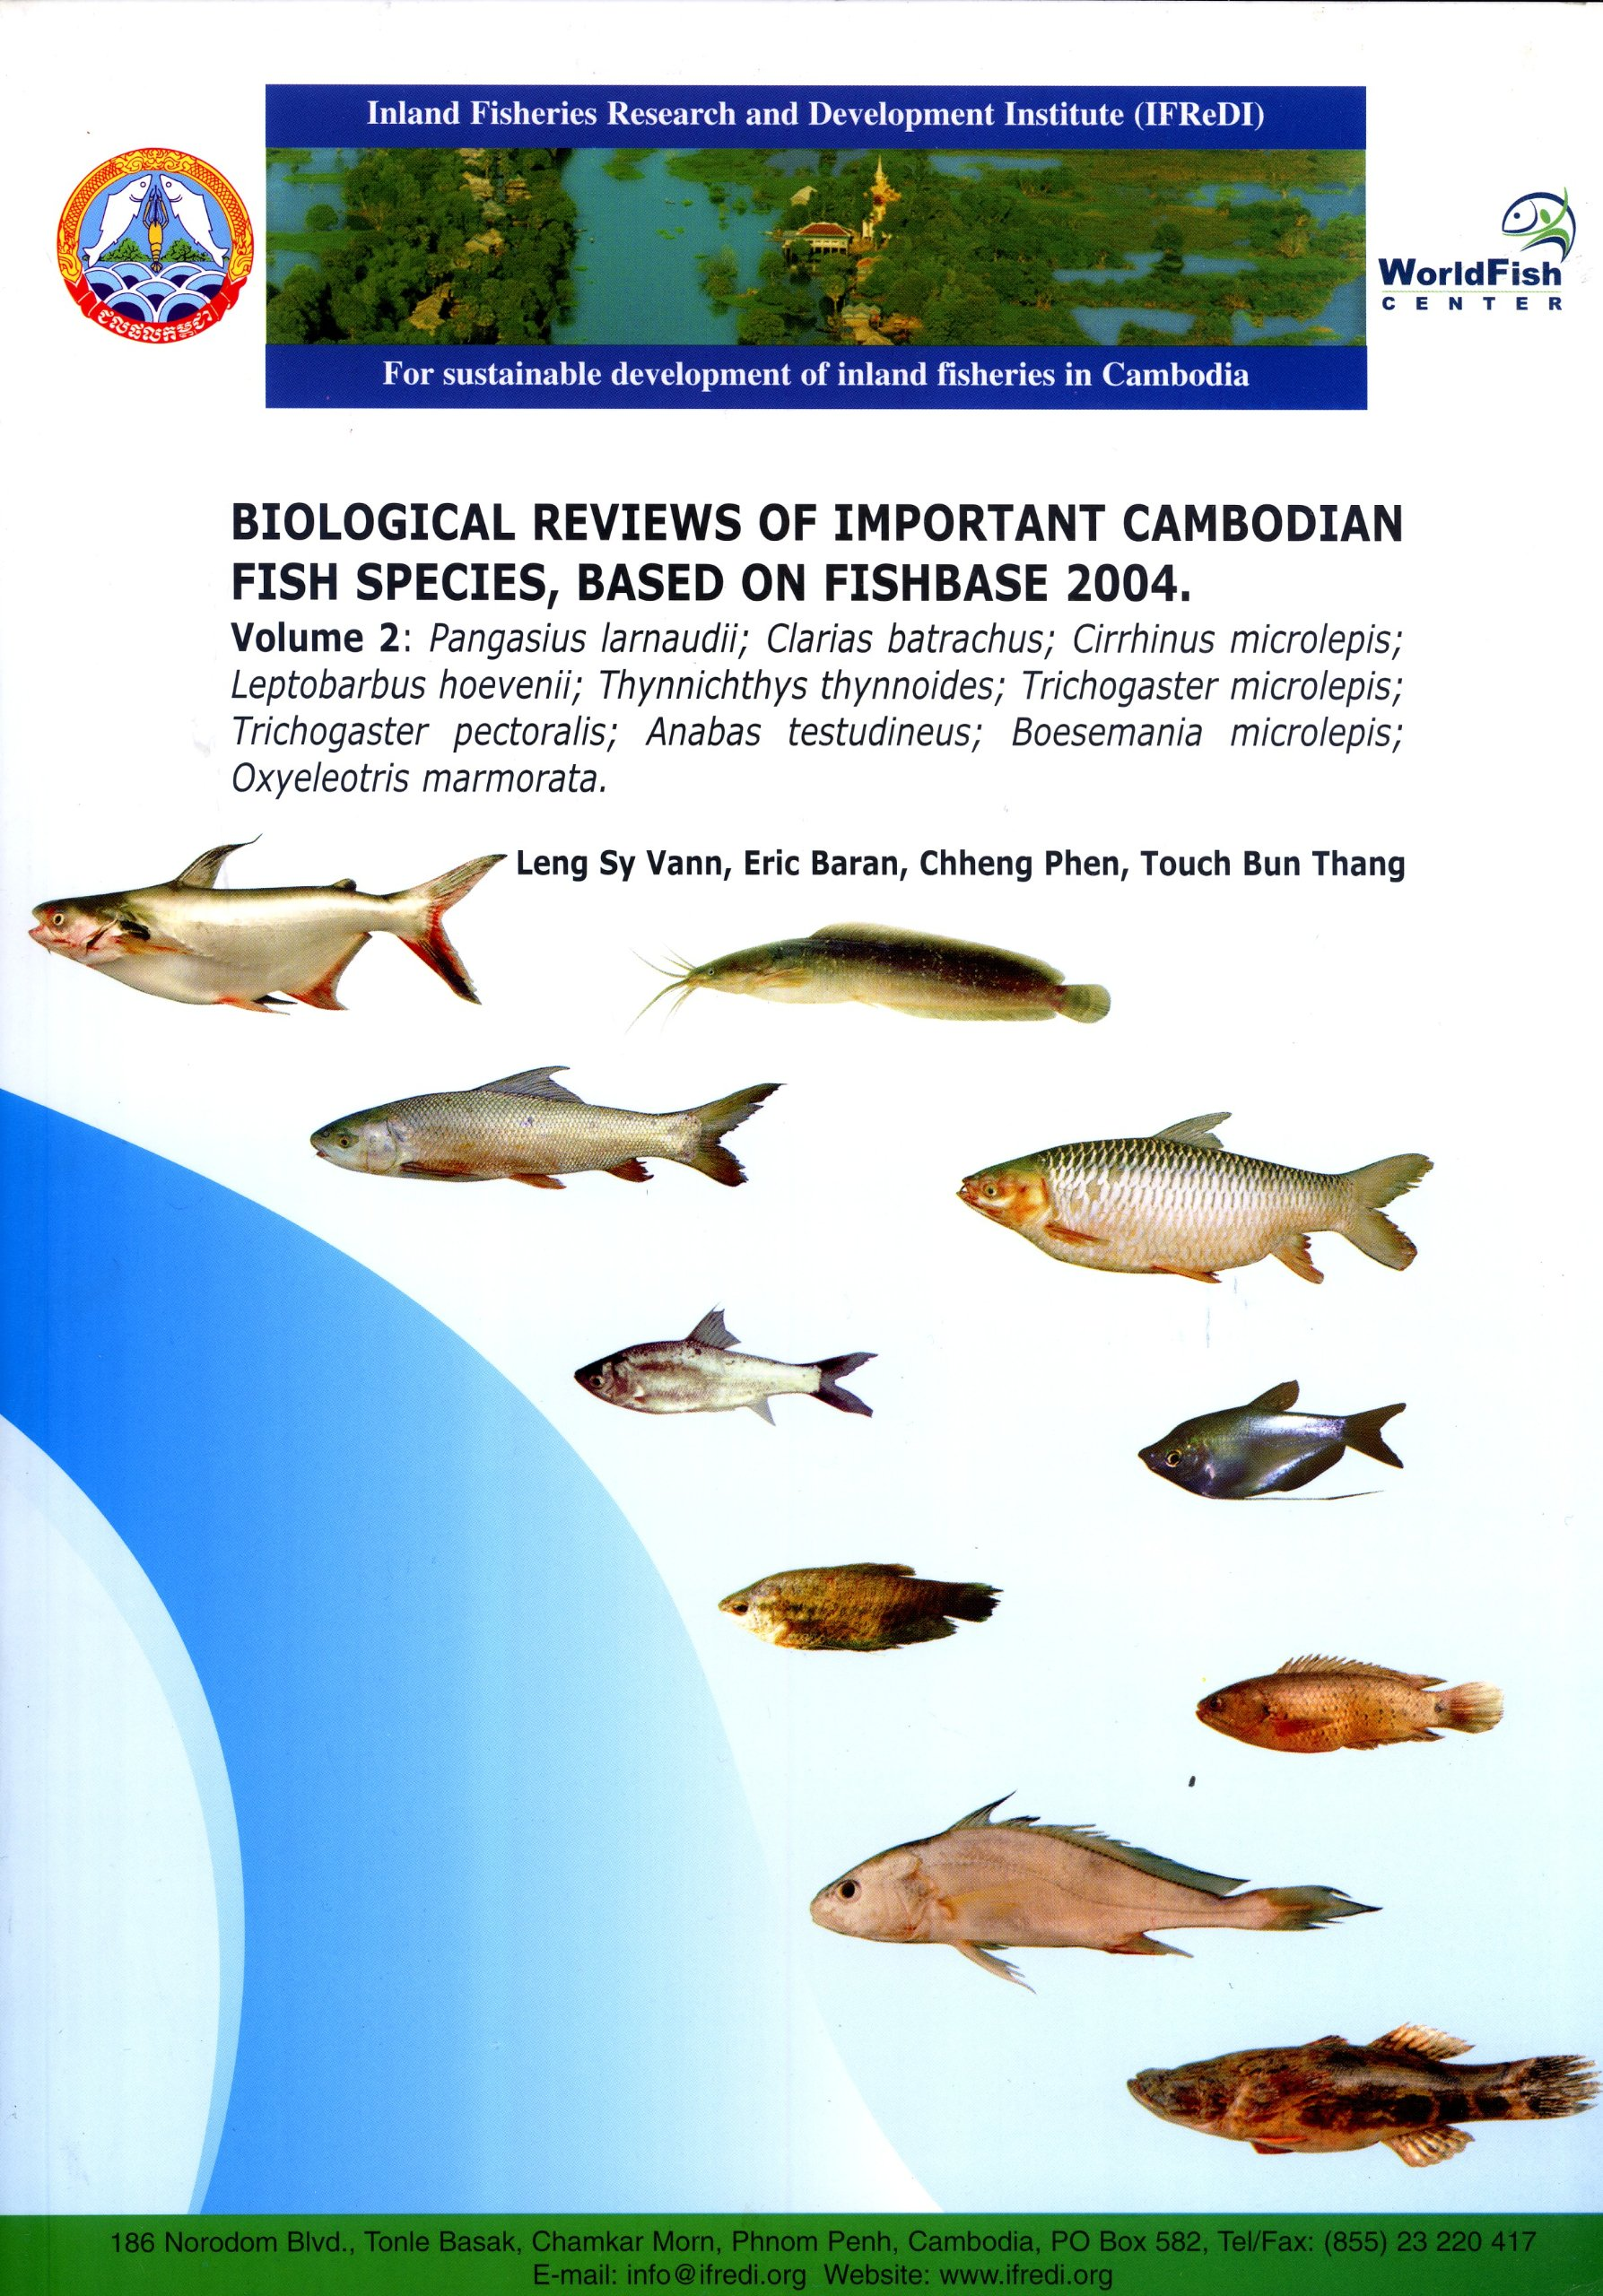 Biological Reviews of Important Cambodian Fish Species